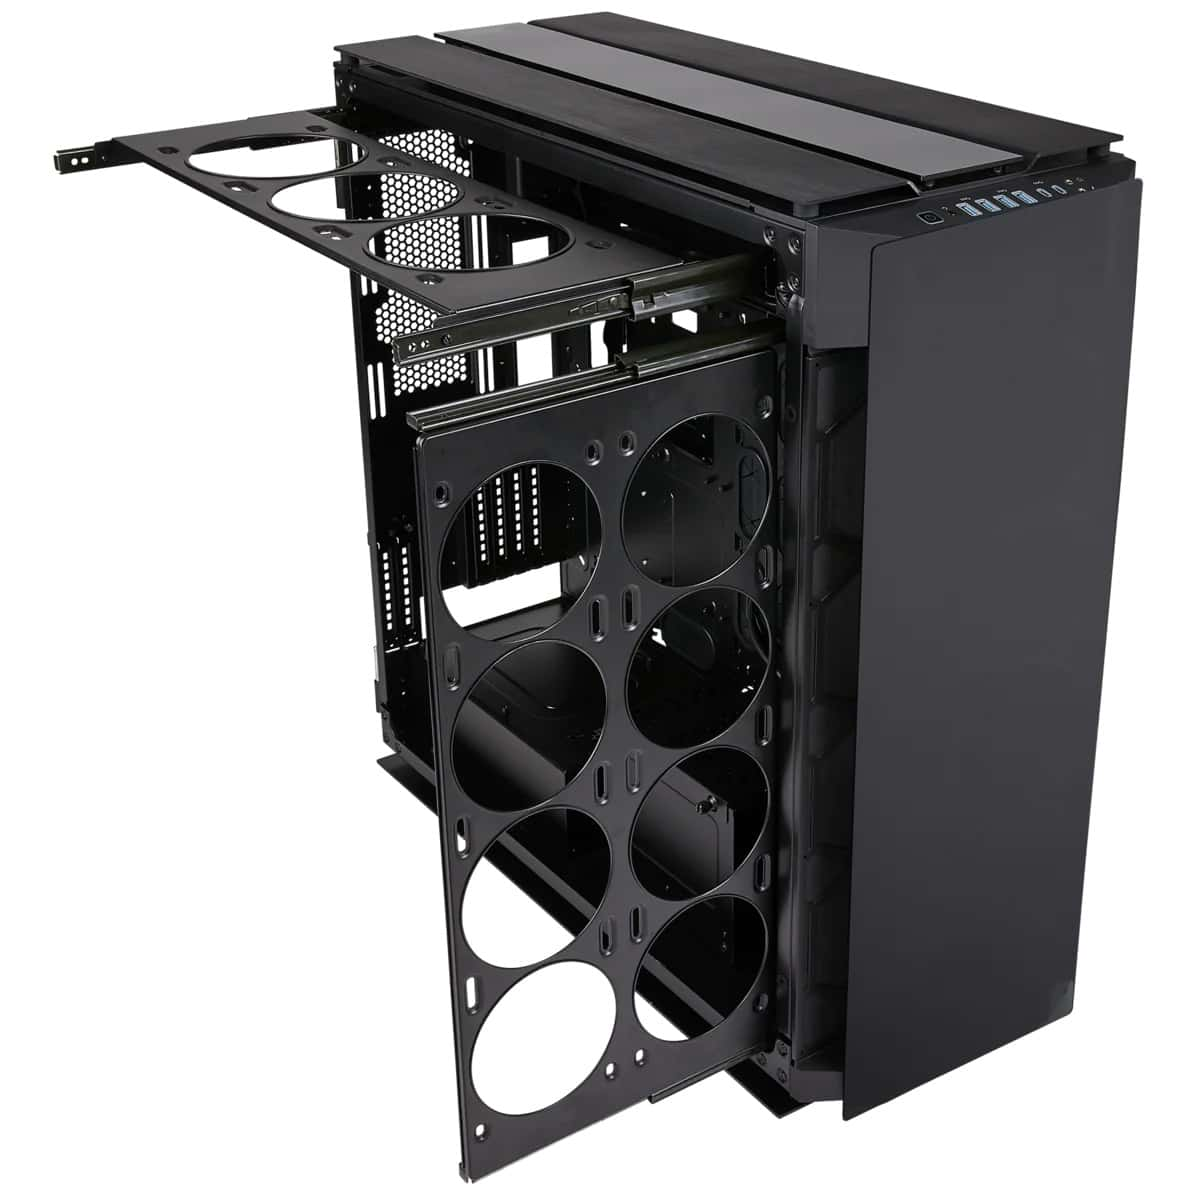 Fan and radiator slide-out trays in the Corsair 1000D